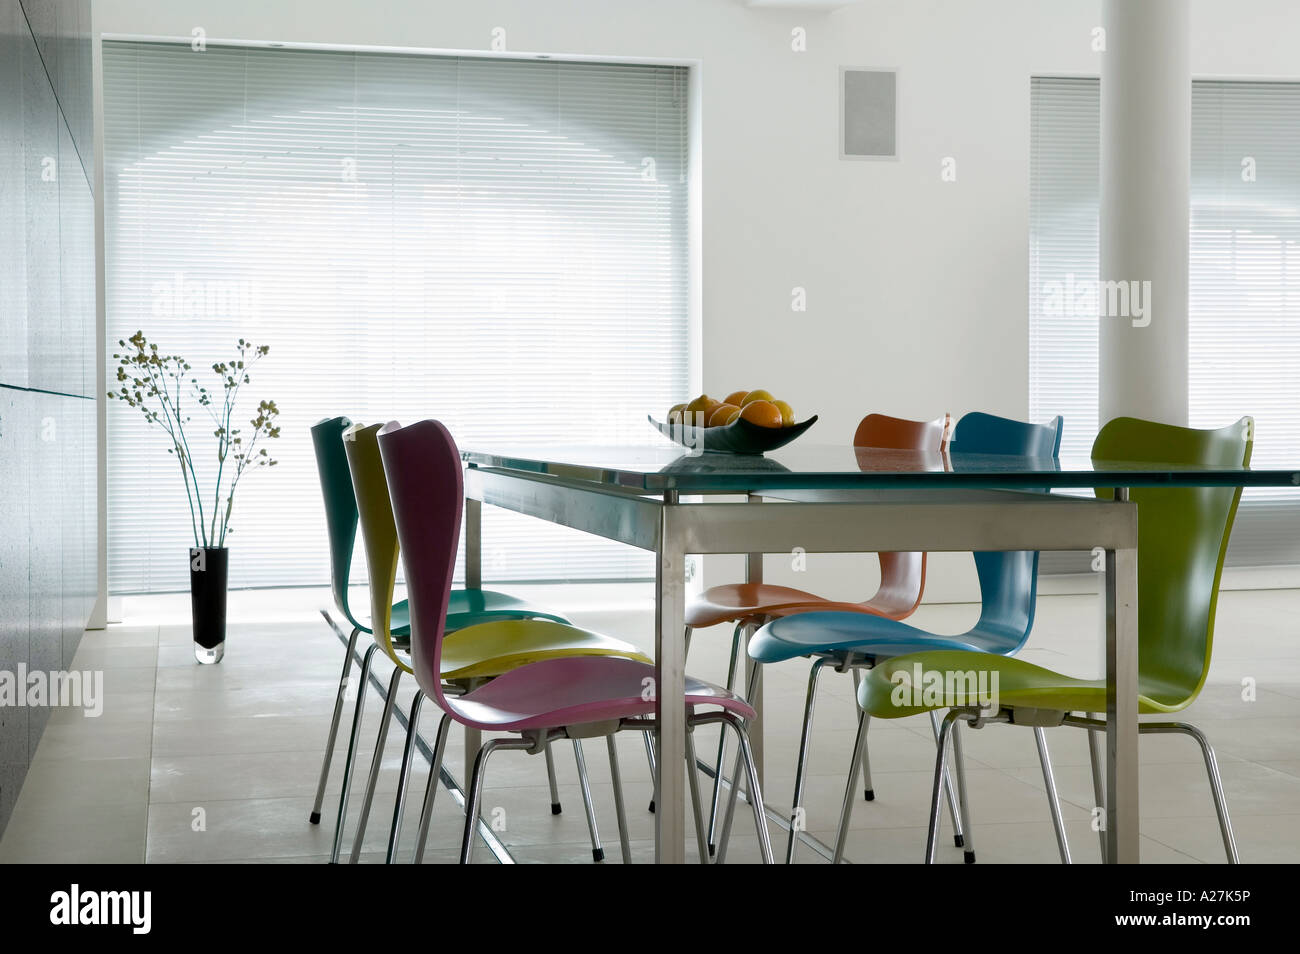 Tavolo Con Sedie Colorate.Butterfly Chairs Stock Photos Butterfly Chairs Stock Images Alamy